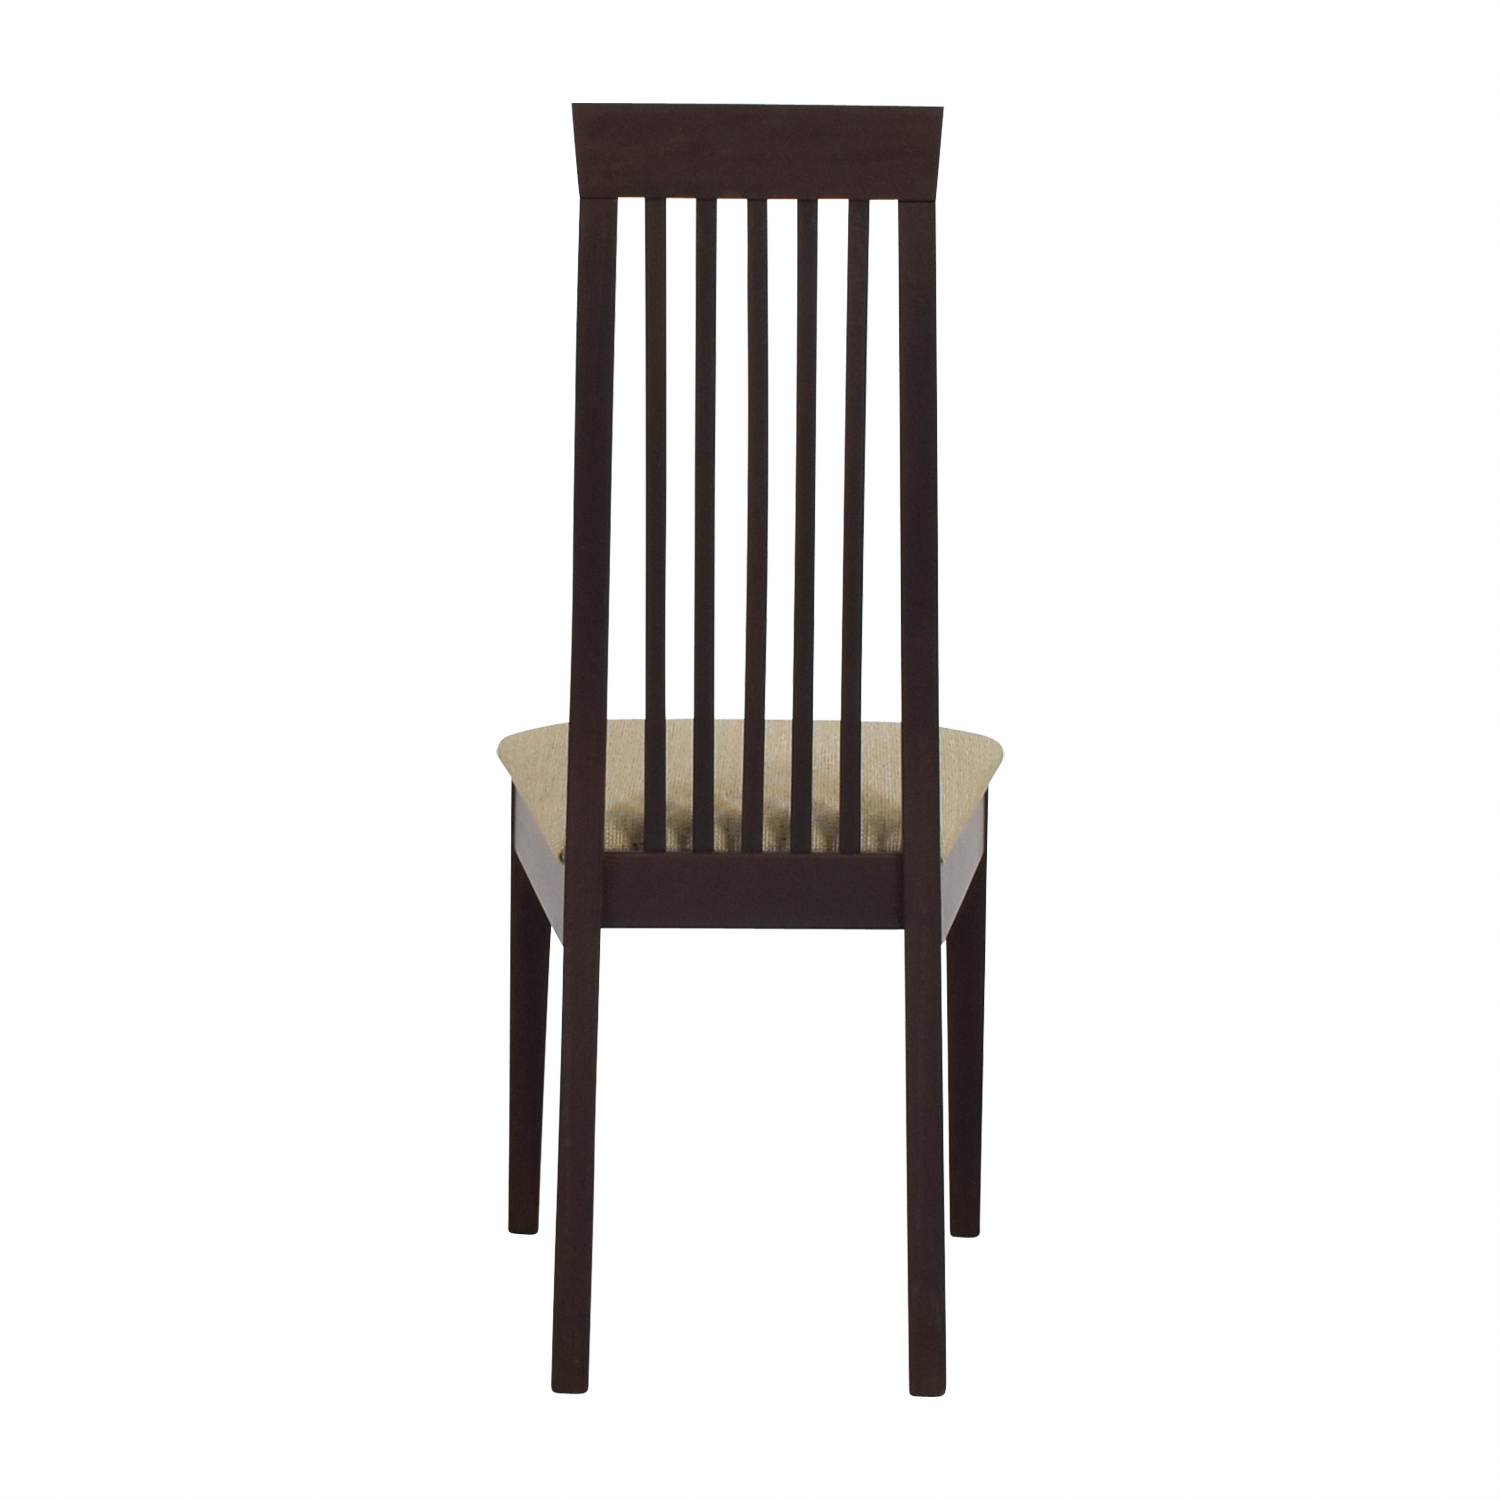 Wood Vertical Slat Back with Tan Cushioned Chair coupon